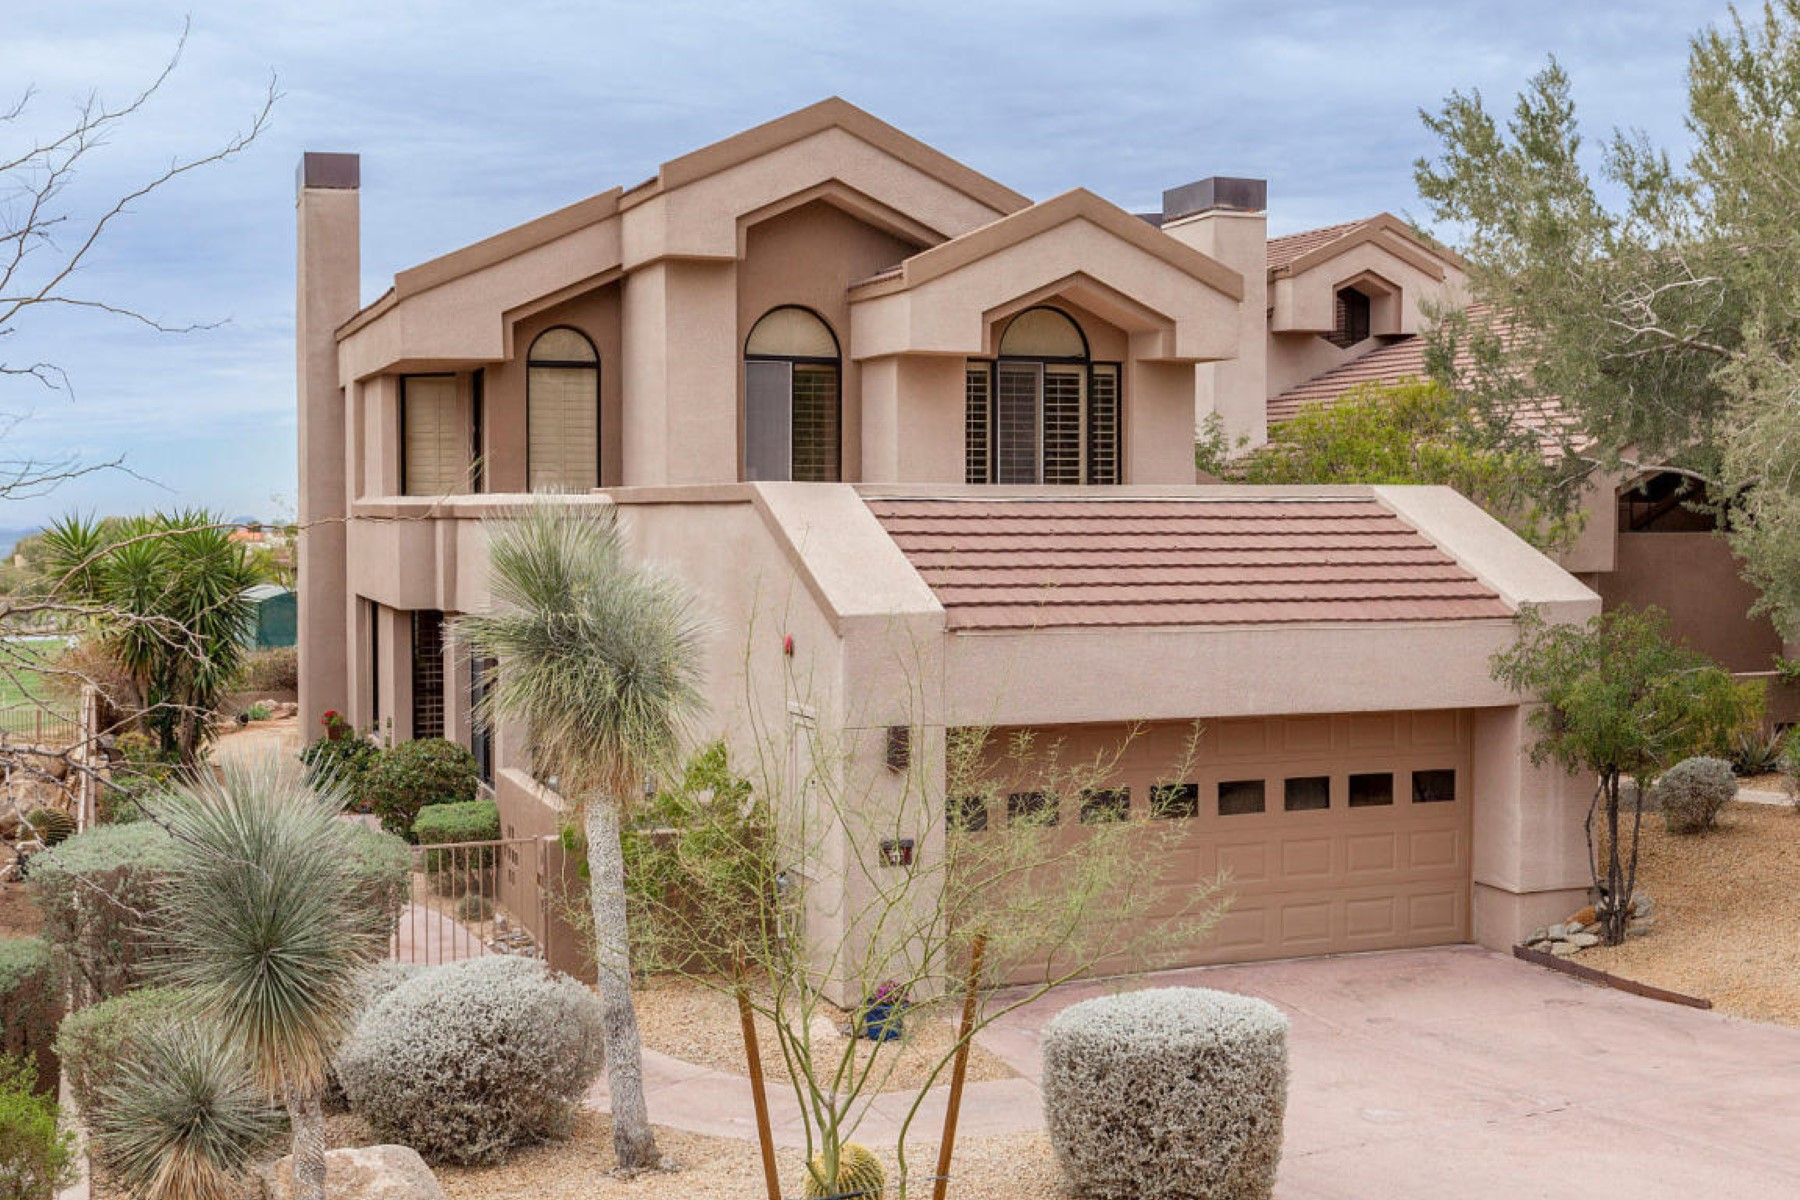 Single Family Home for Sale at Million-dollar views in a renovated and low-maintenance home 25150 N Windy Walk Dr #49 Scottsdale, Arizona, 85255 United States